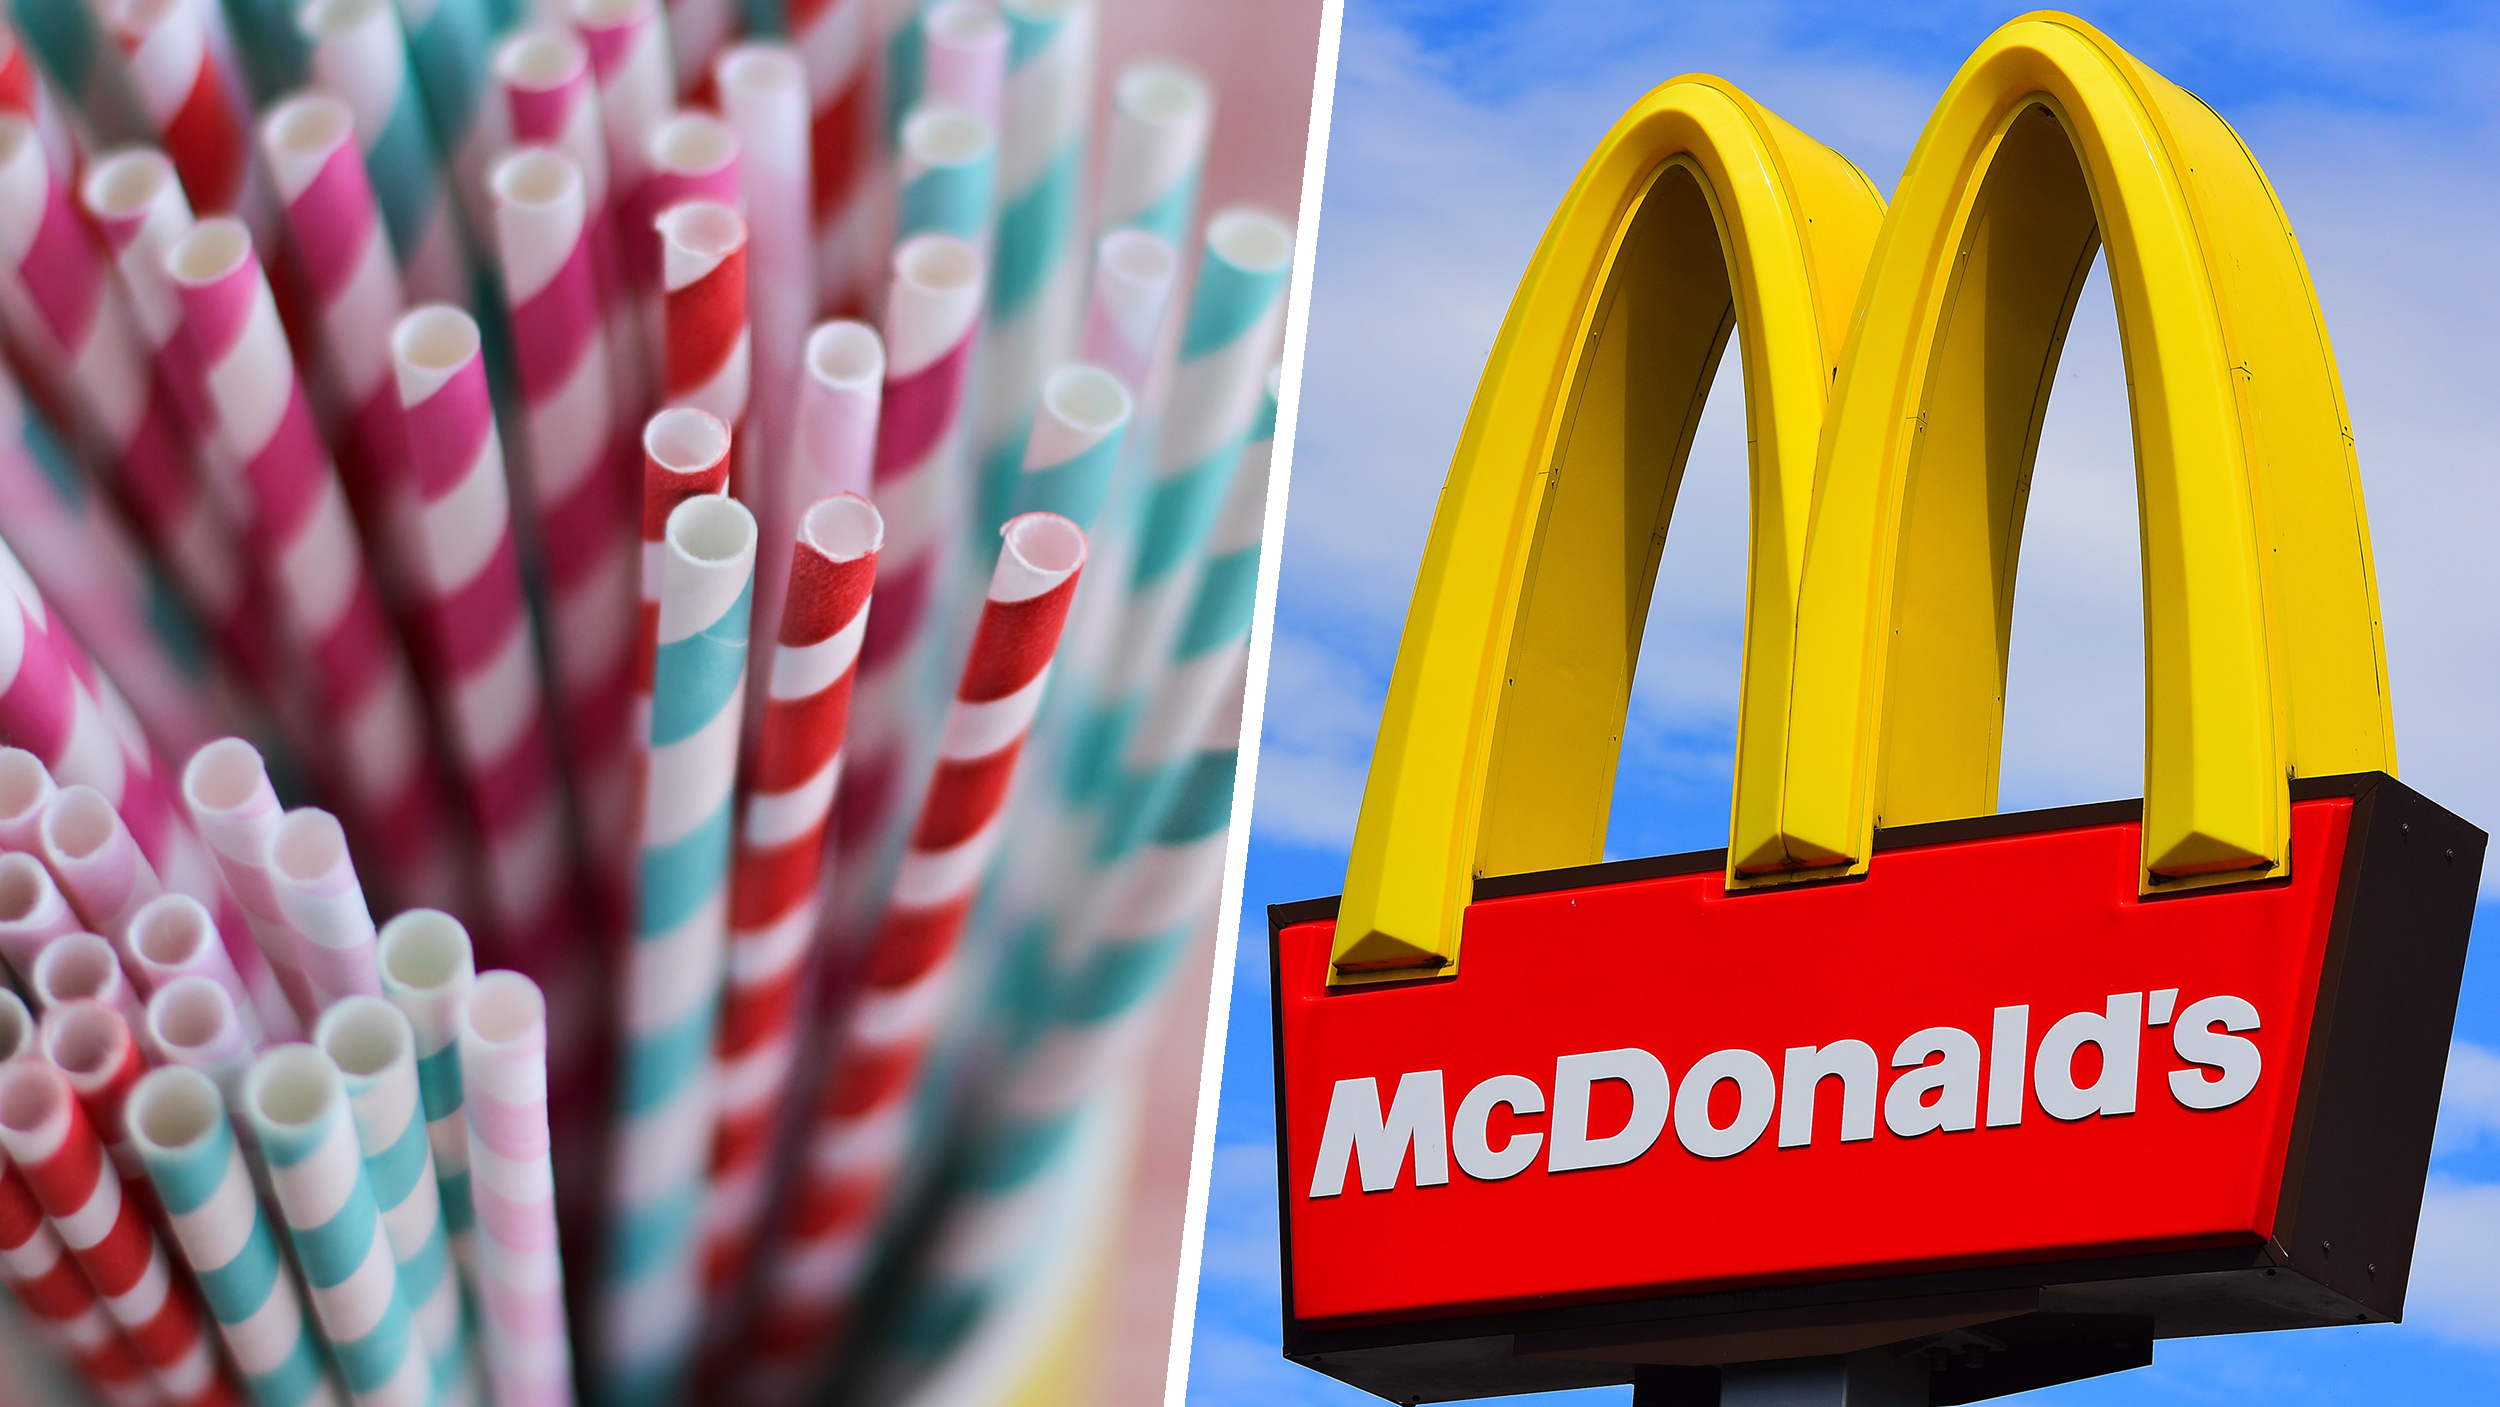 McDonald's to stop using plastic straws in select US markets - TODAY.com